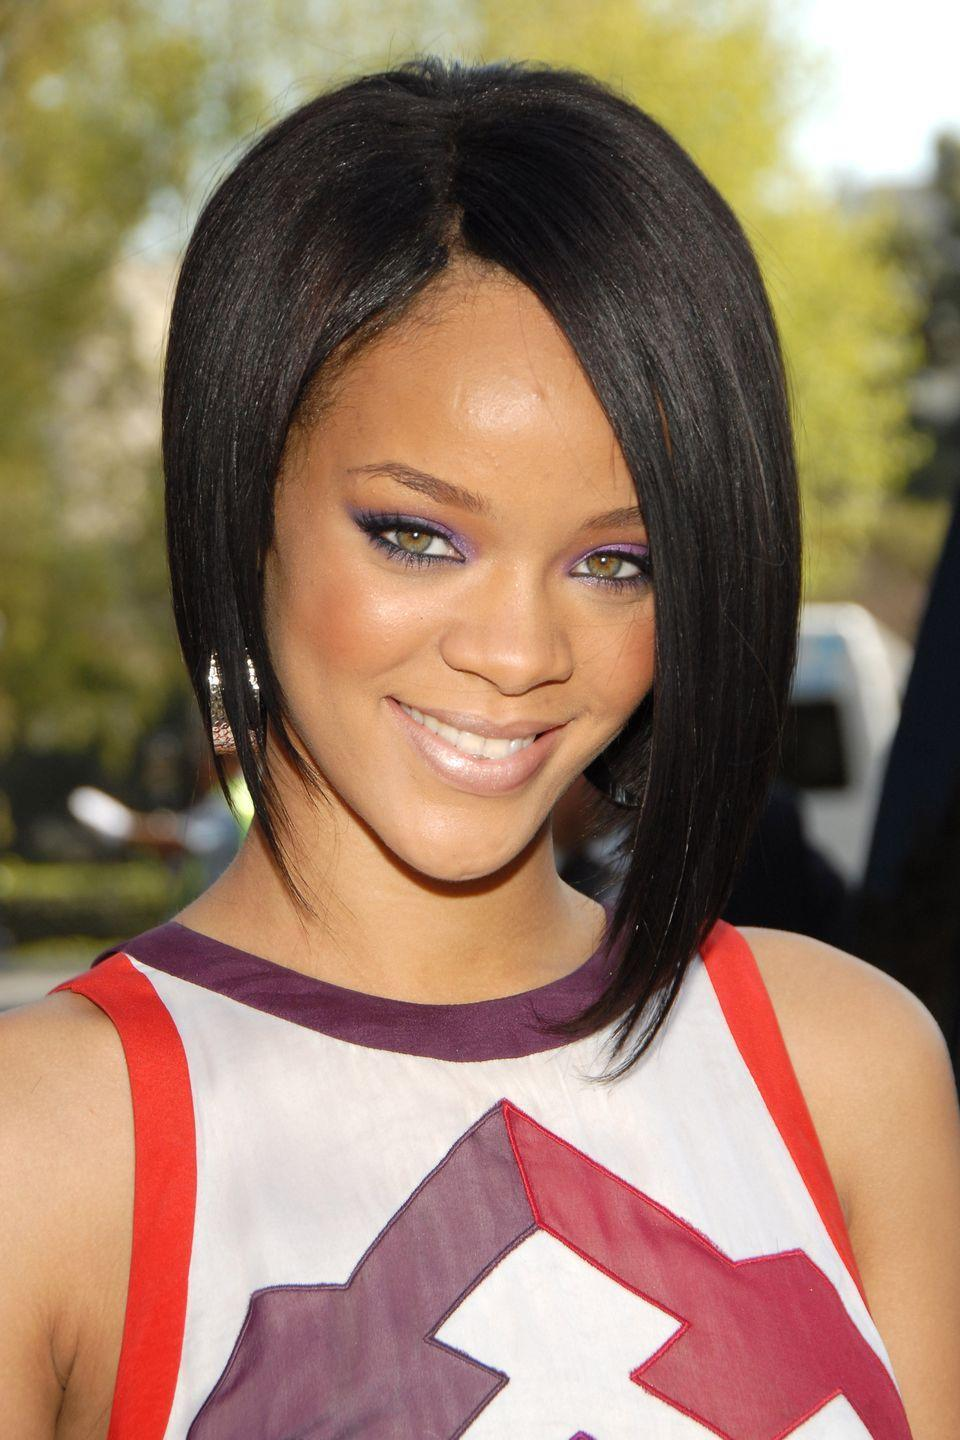 <p>Rihanna's angled bob is iconic, with the front layers being longer than the back. </p>